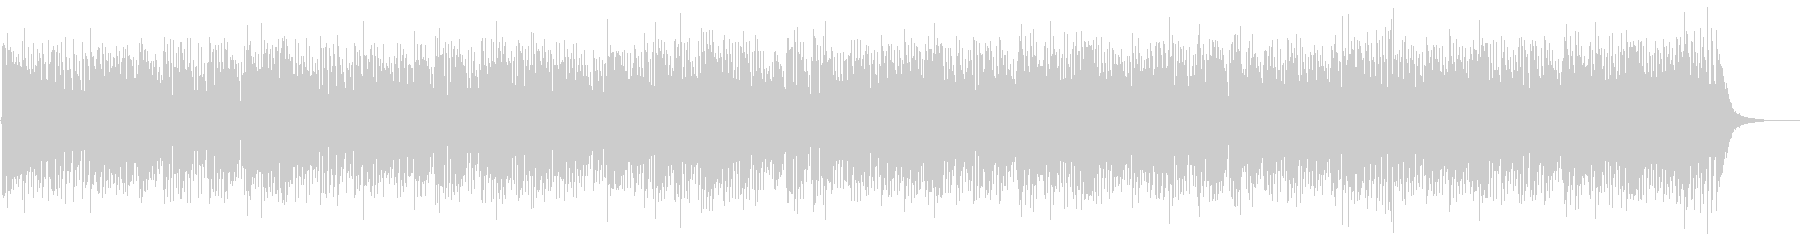 Aria Jazz on the G line's unreproduced waveform